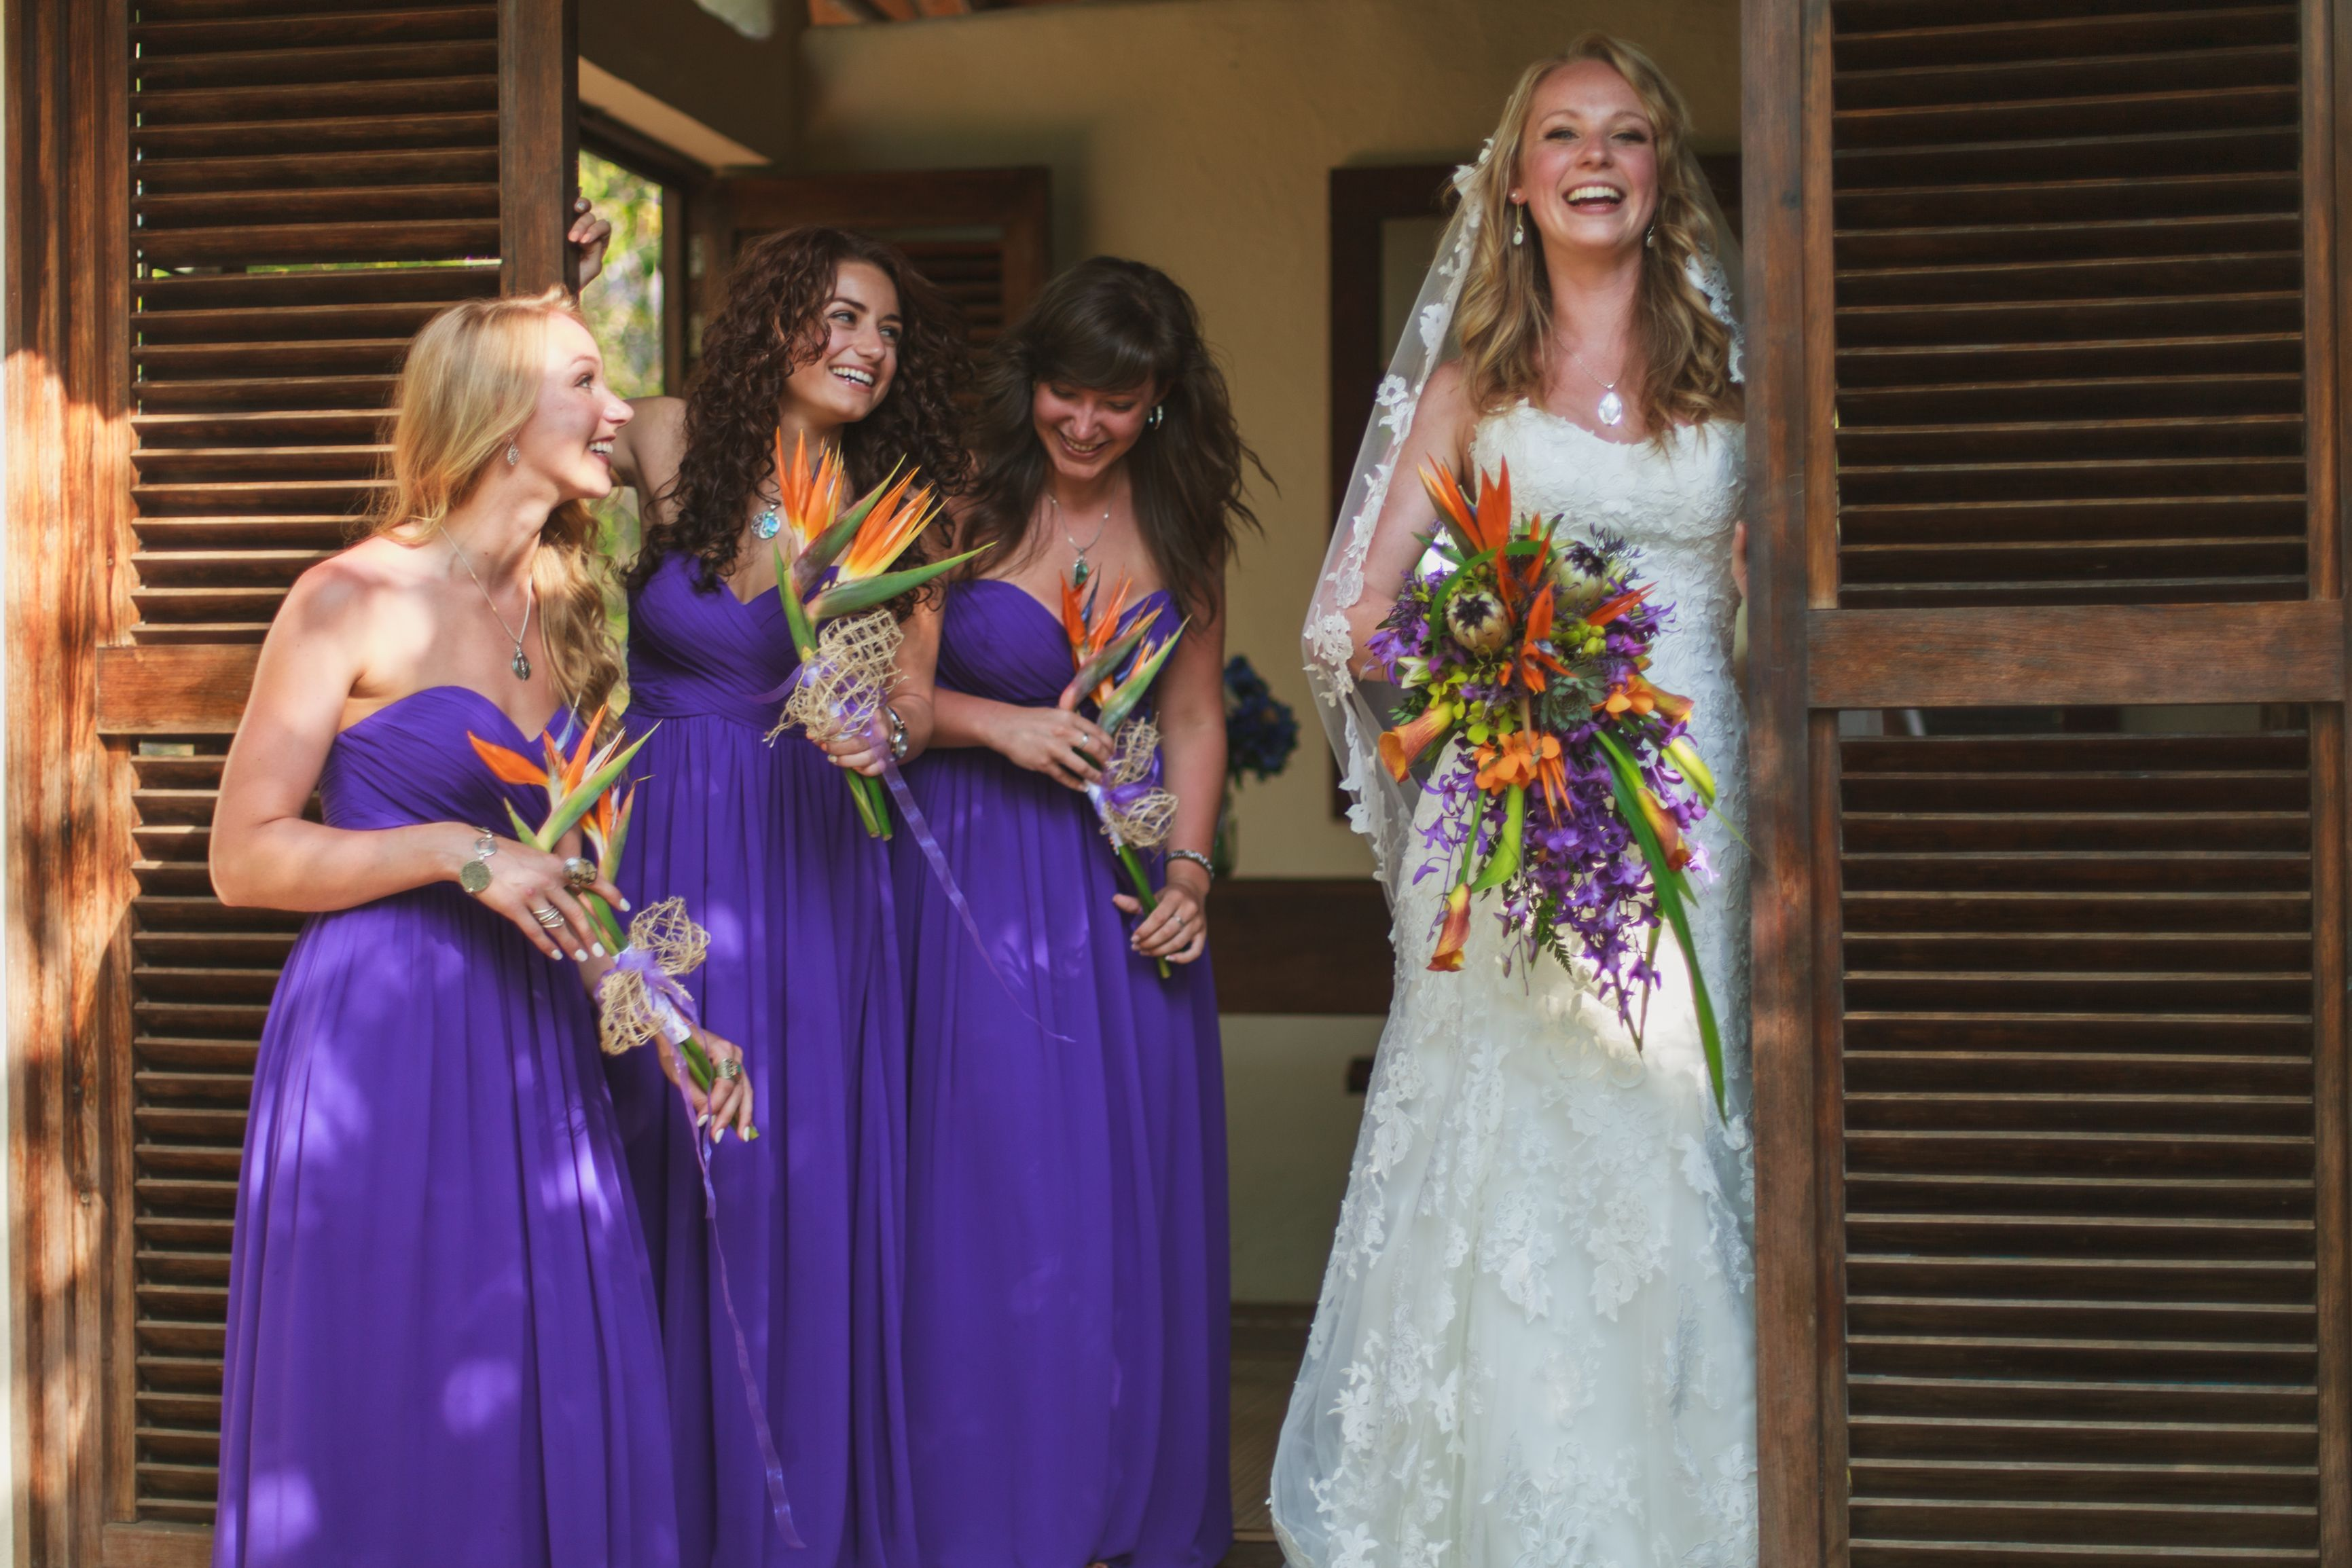 Purple long strapless dresses stand out even more with the tropical